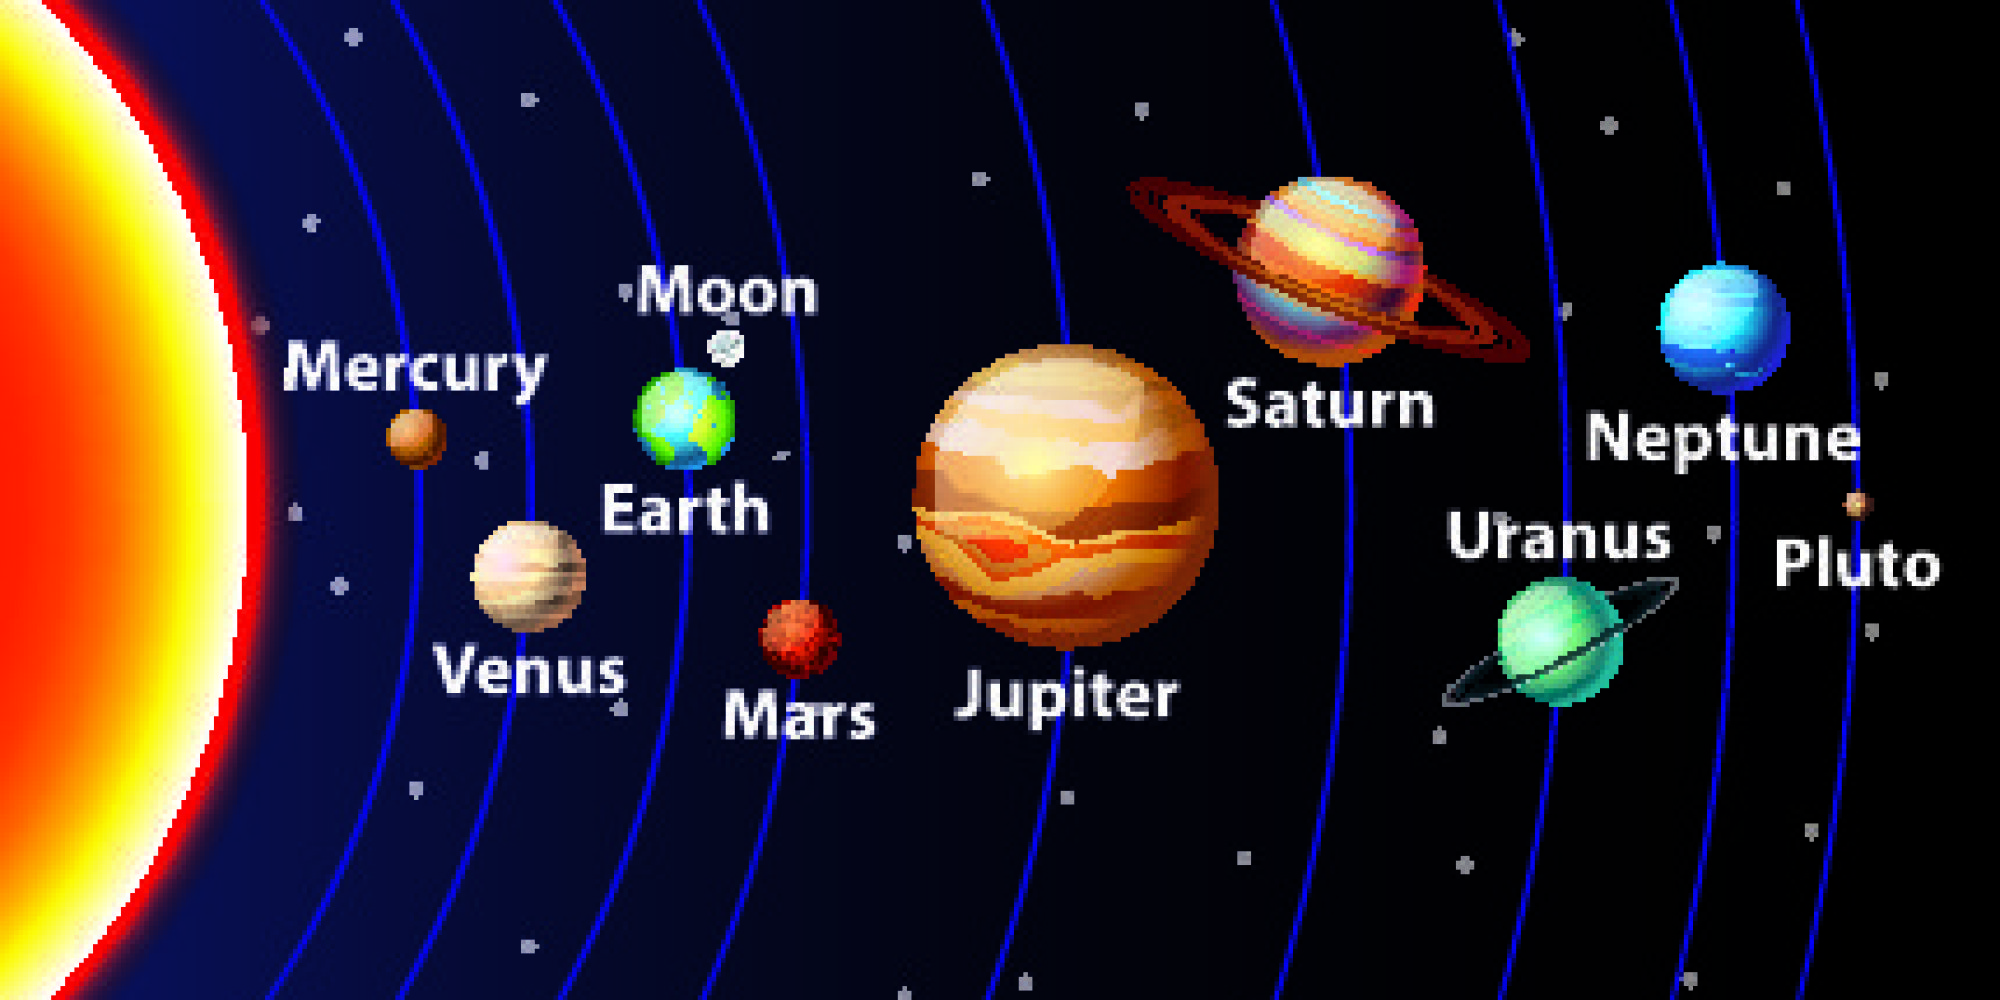 Which Of The Following Jovian Planets Does Not Have Rings